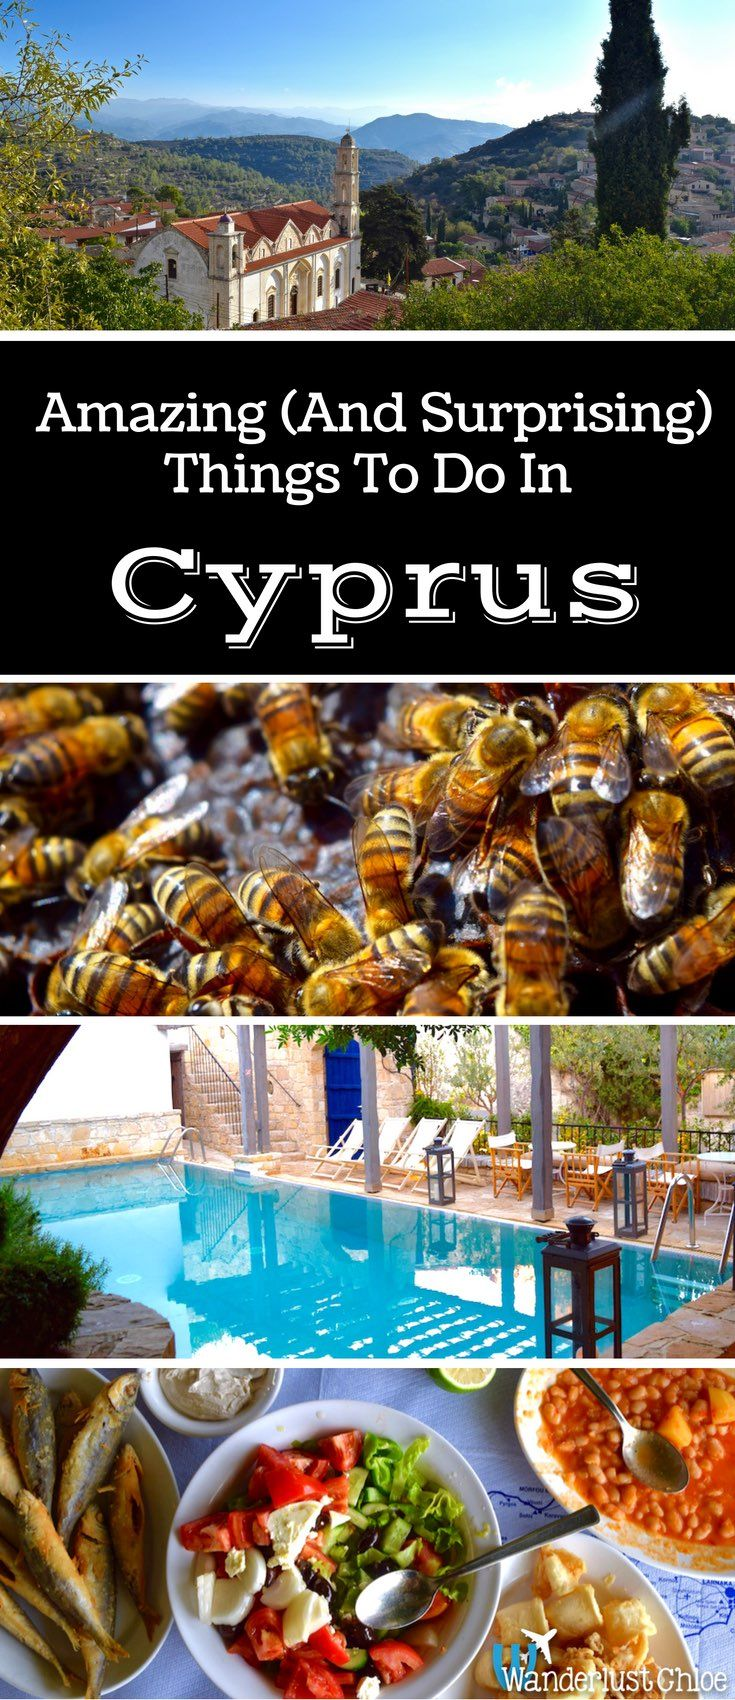 7 Amazing (And Surprising) Things To Do In Cyprus